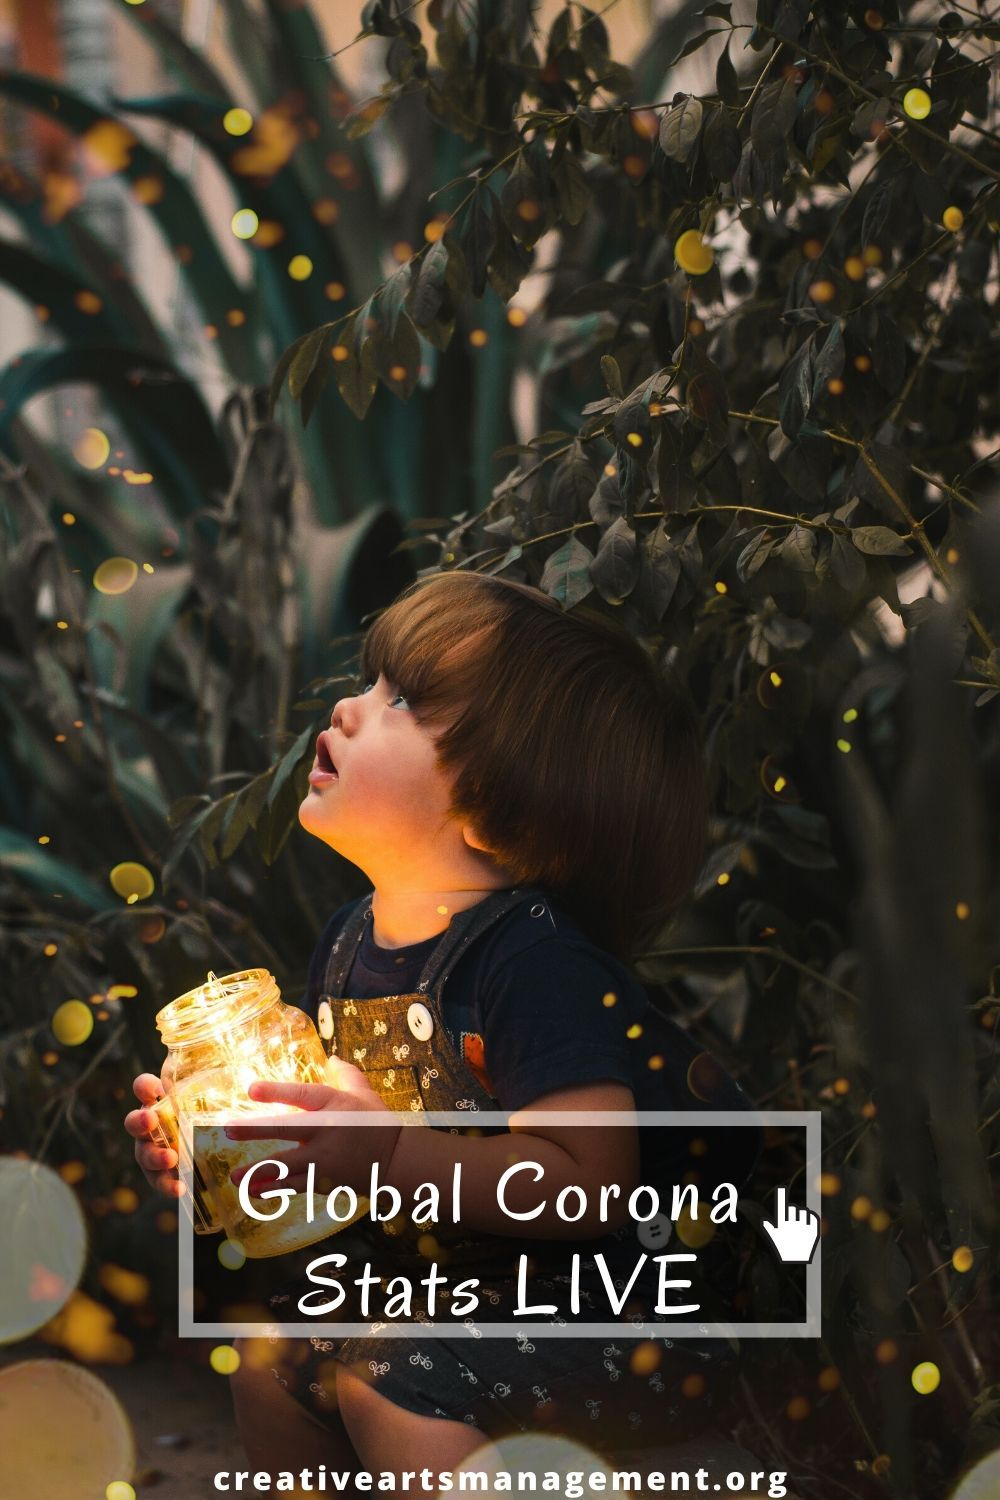 Global Corona Statistics LIVE NOW in 2020 Live in the